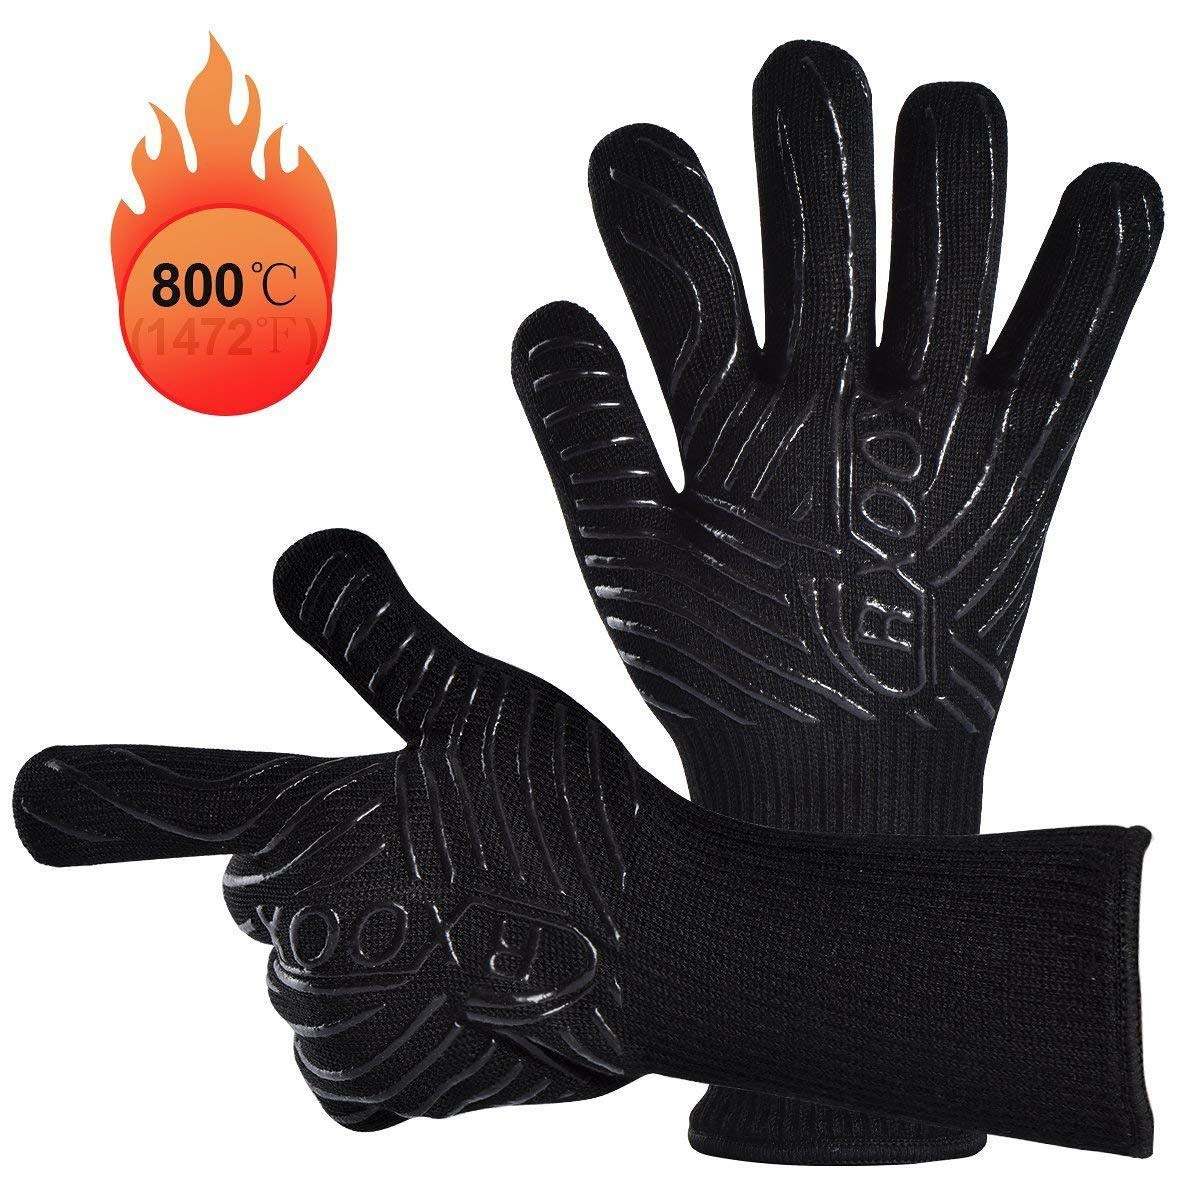 ZJYSM Comfortable, Wearable, Flexible, Lightweight, Professional Custom-Made BBQ Double-Layer High Temperature 800-degree Microwave Camping are Available Gloves Gloves